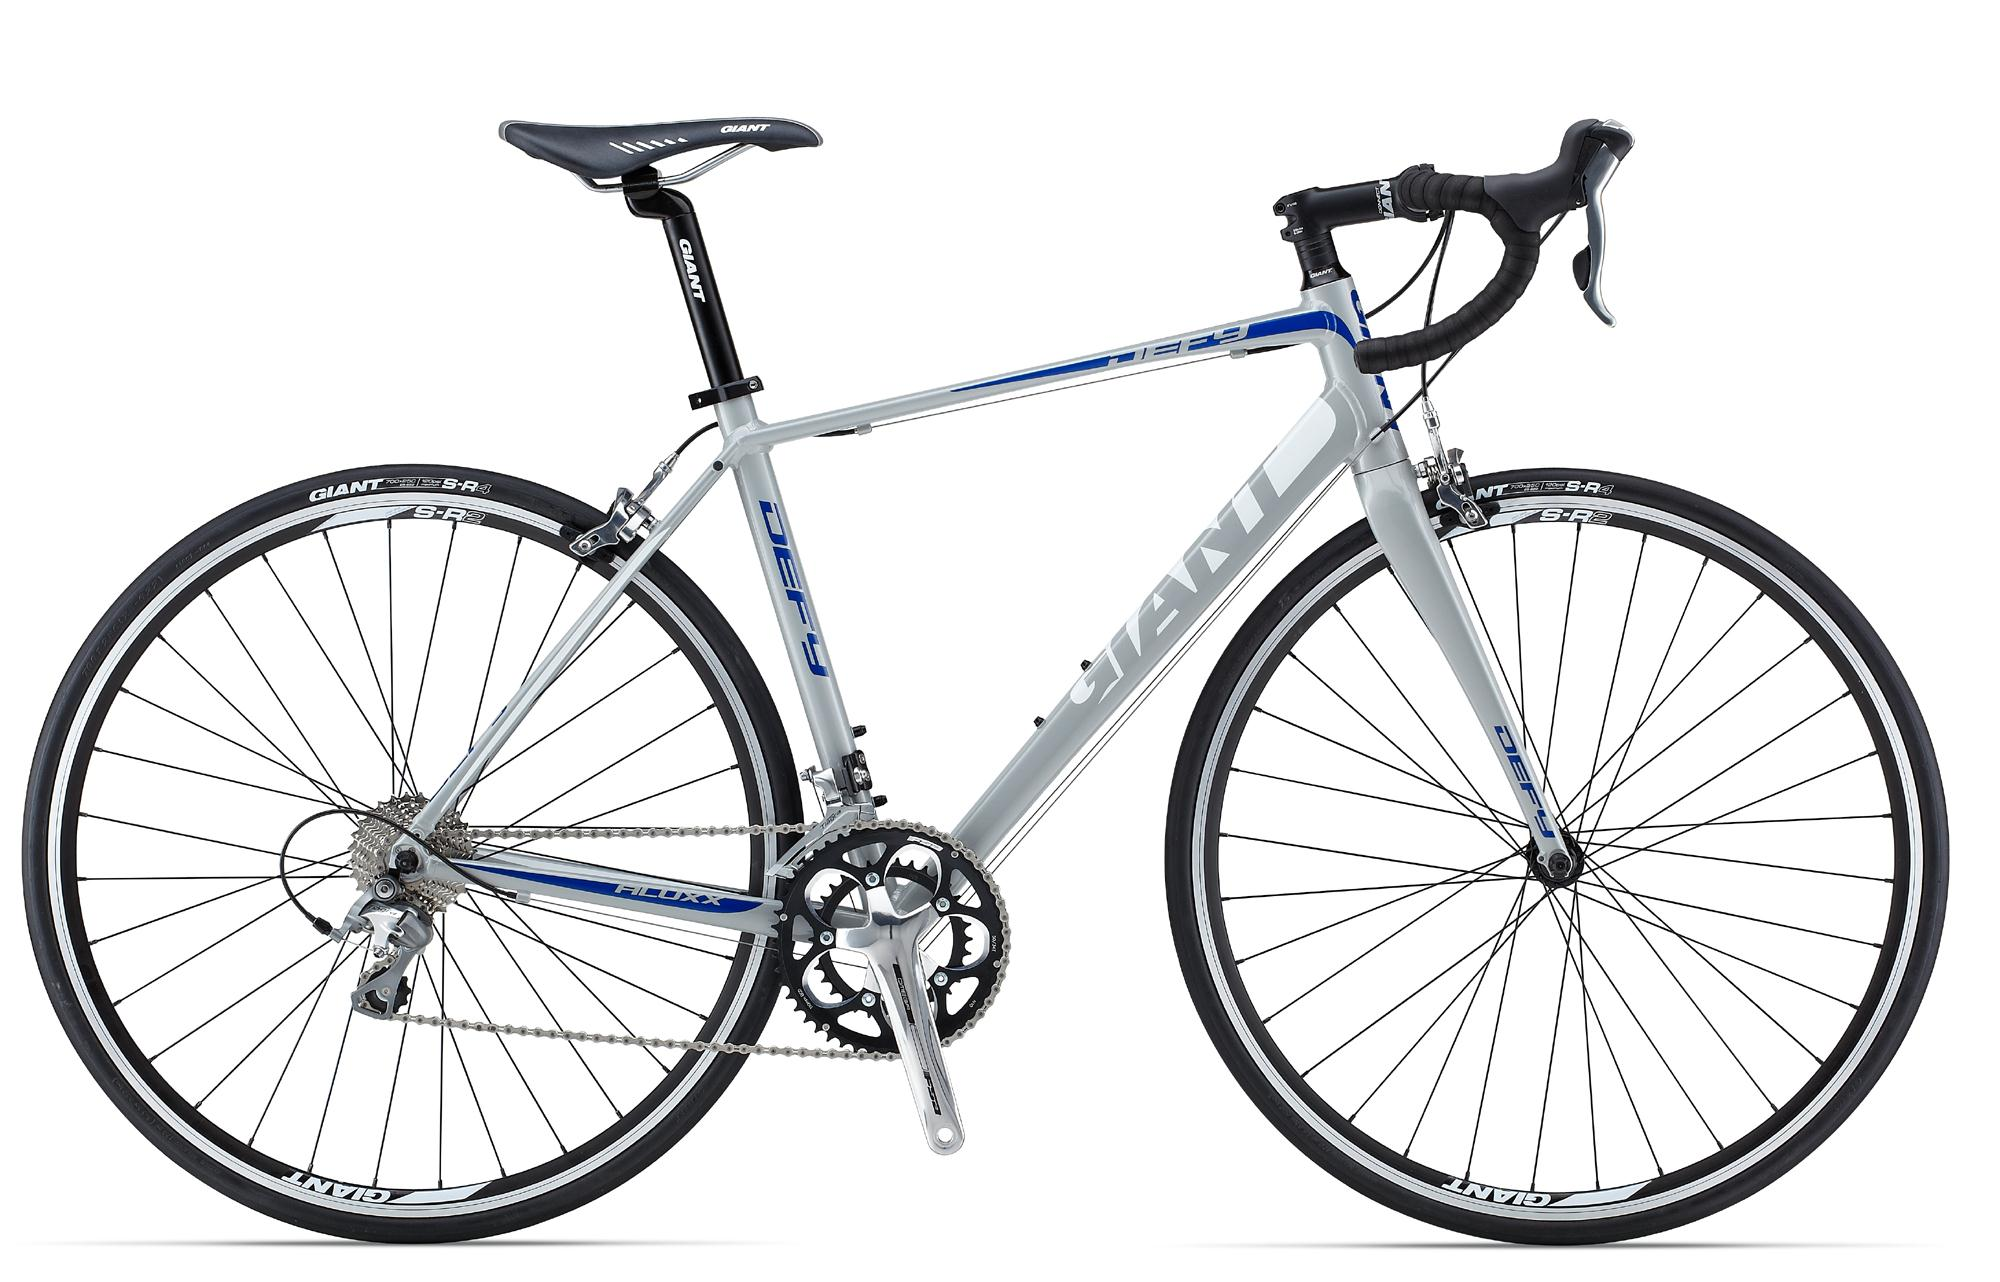 ... Defy as its top entry-level road bike for the fourth year in a row